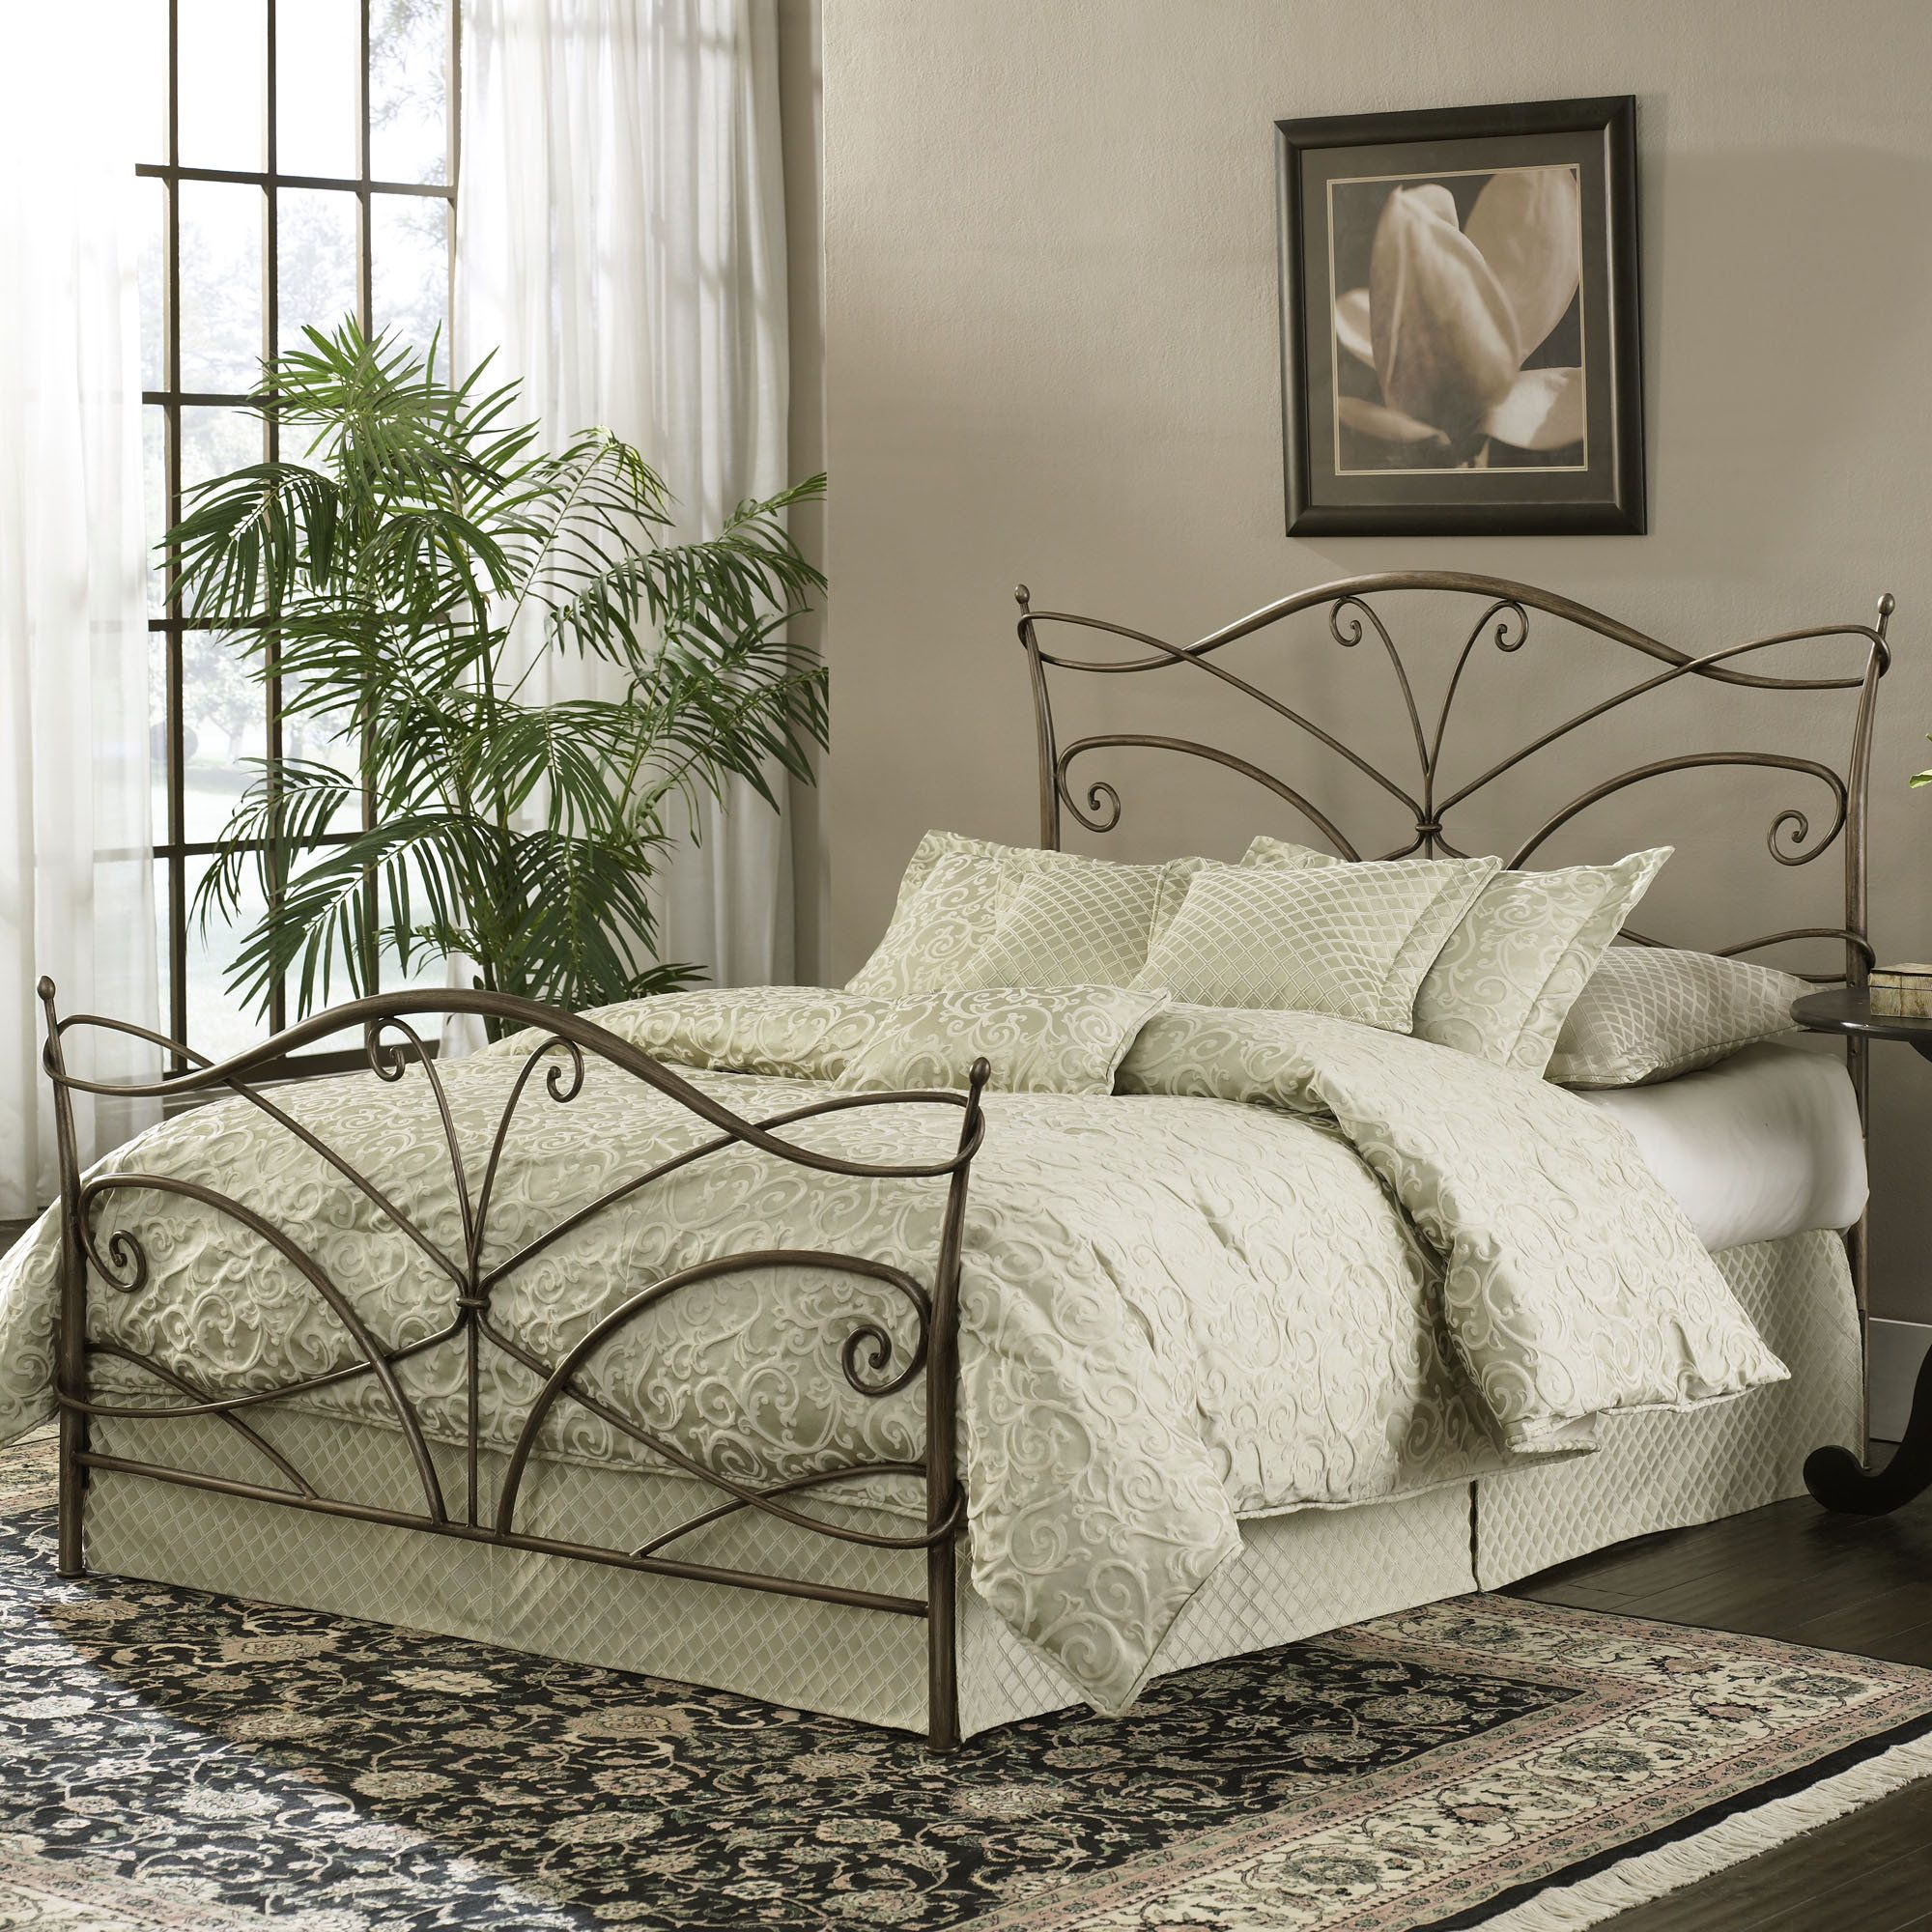 Various Types of Bed Frames Wrought iron beds